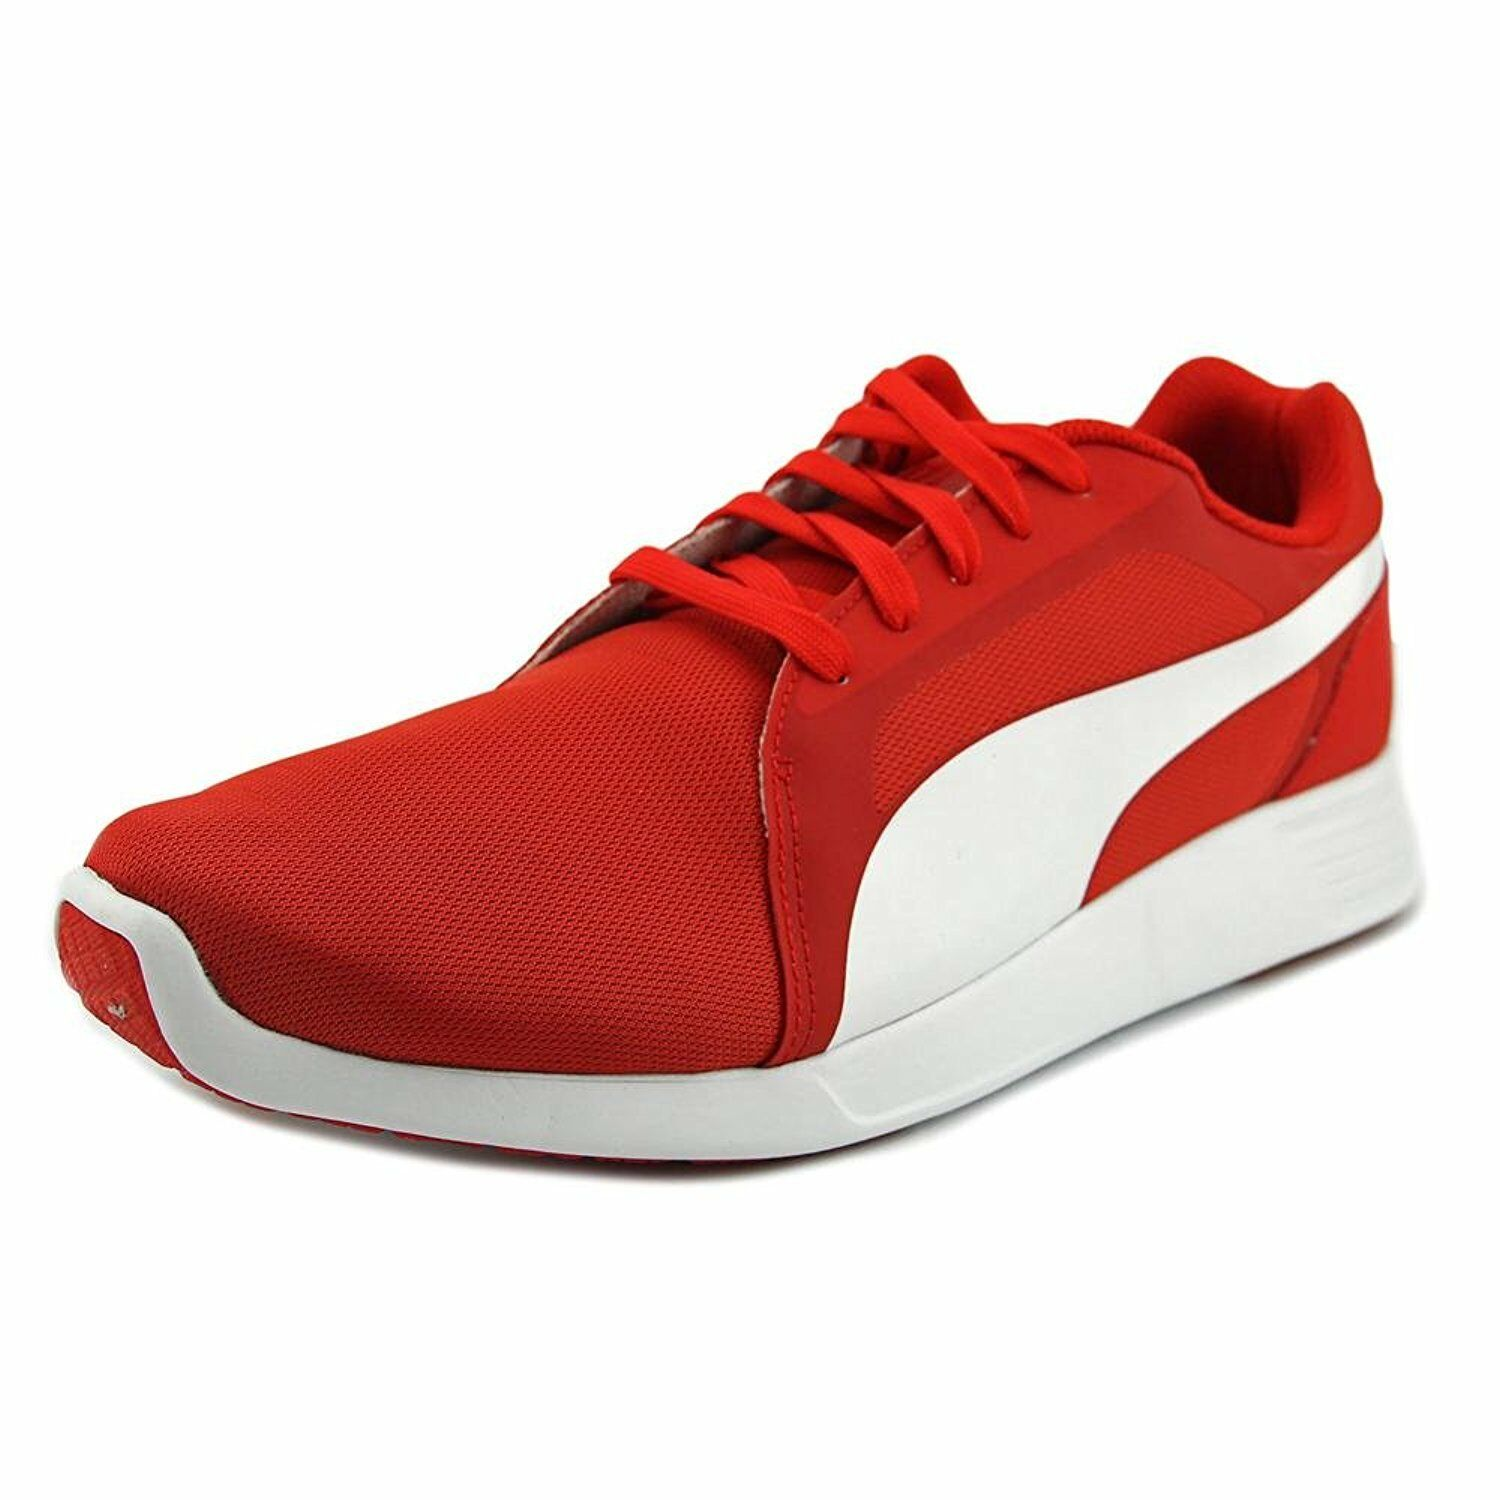 Puma 359904 04 St Trainer Evo Men US 7.5 Red Sneakers